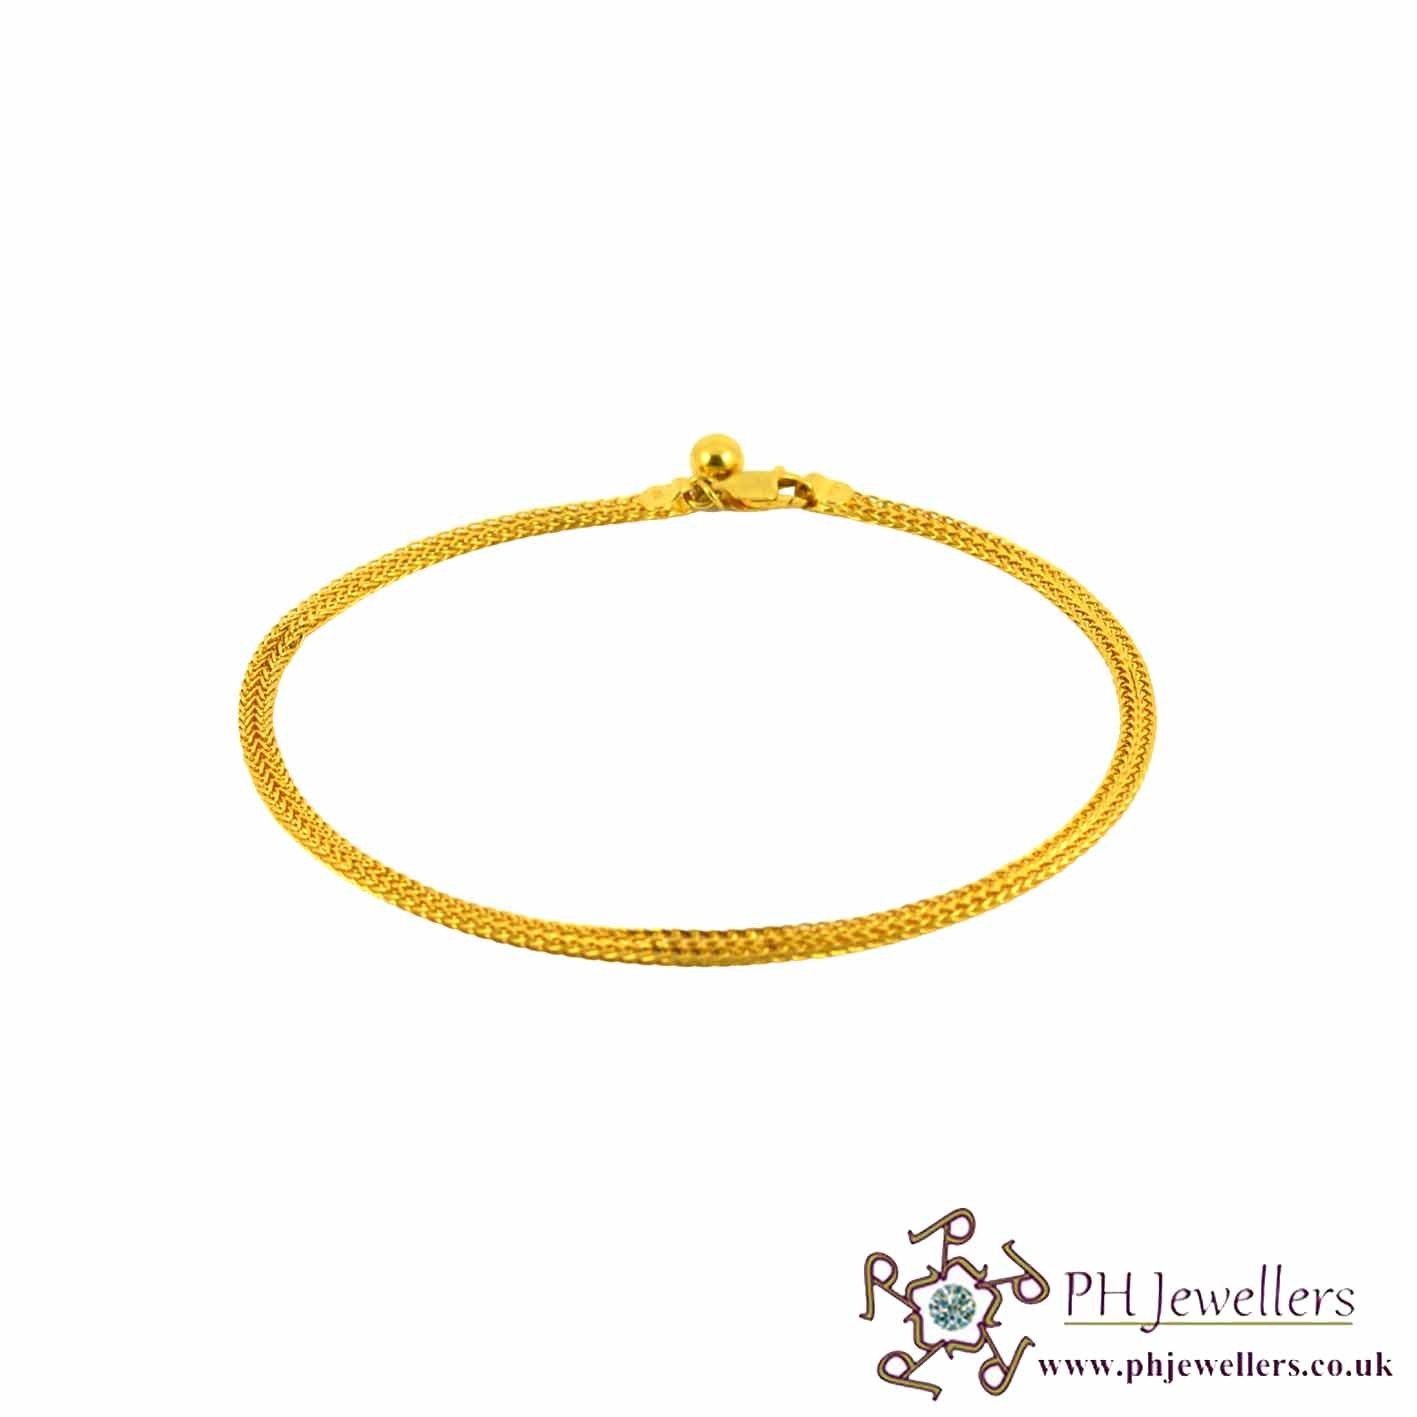 ct qlt gold shop anklet t pdpimgshortdescription layer comp product bezel exclusive bracelet wid fpx diamond usm op ankle resmode yellow in w tif sharpen